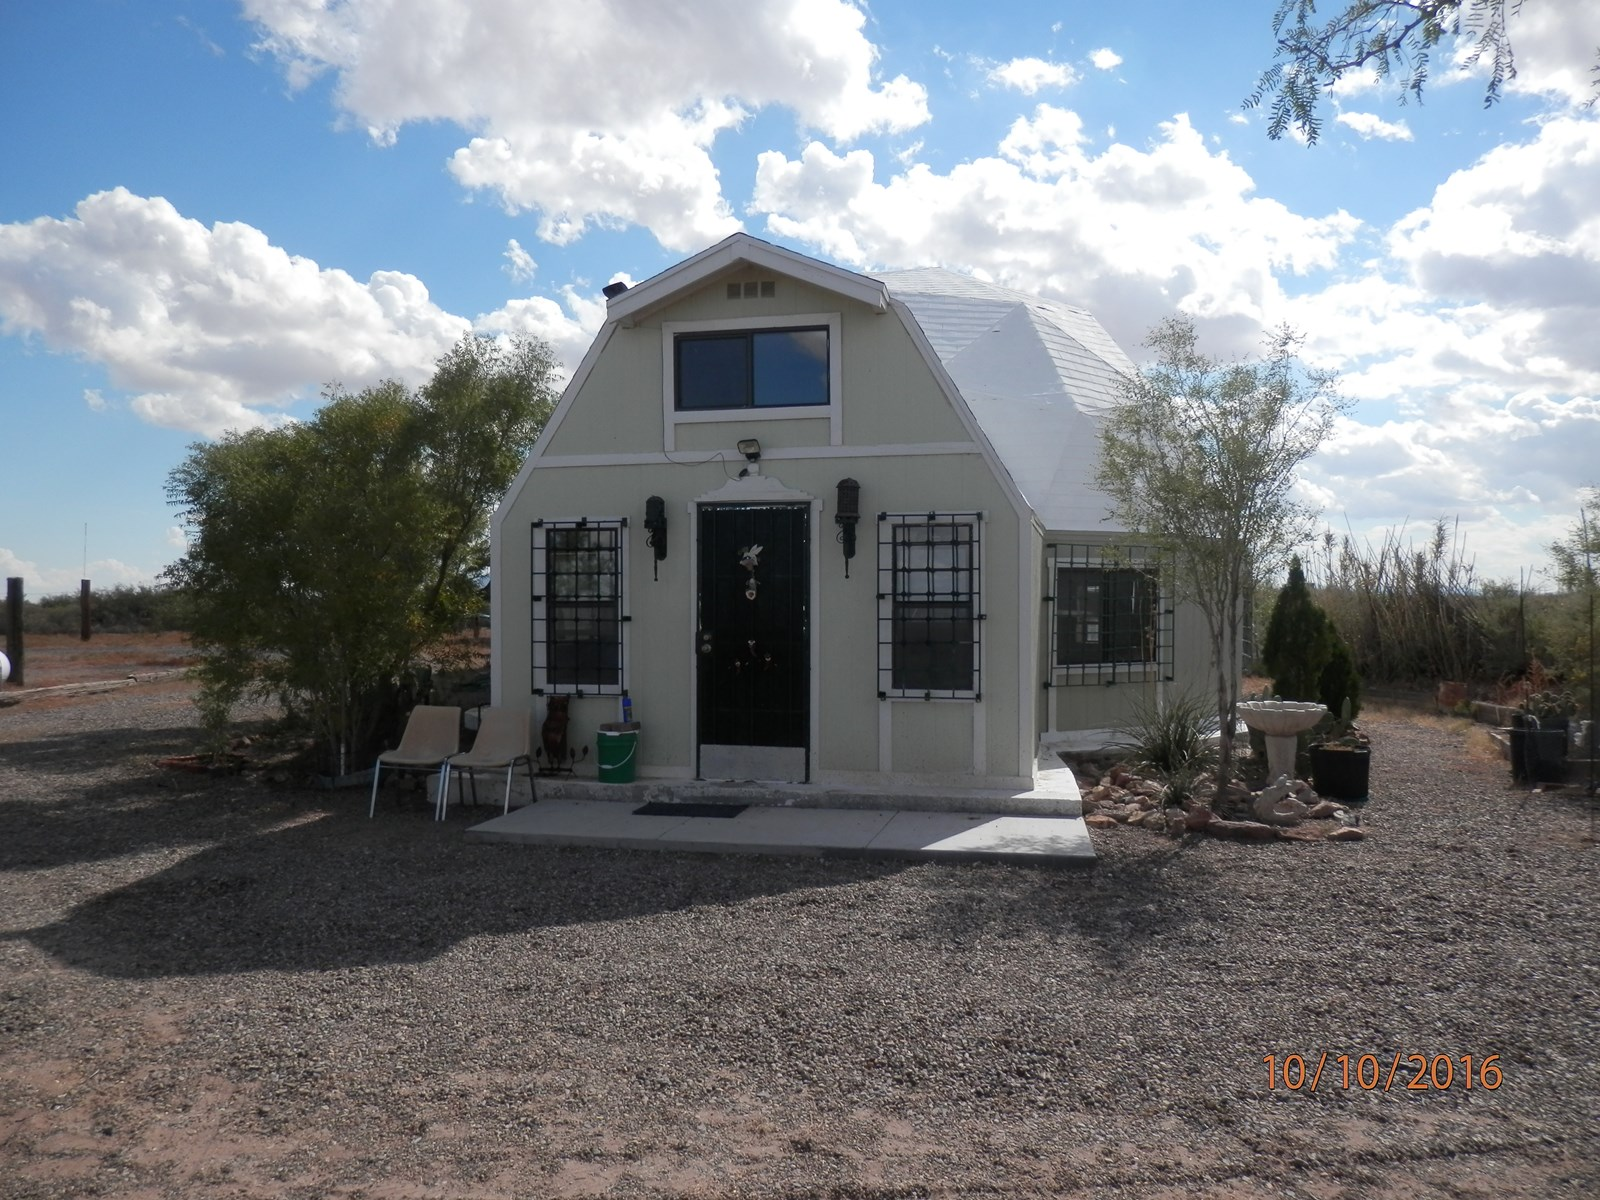 Desert property. GEO-dome home for sale, Luna County .NM